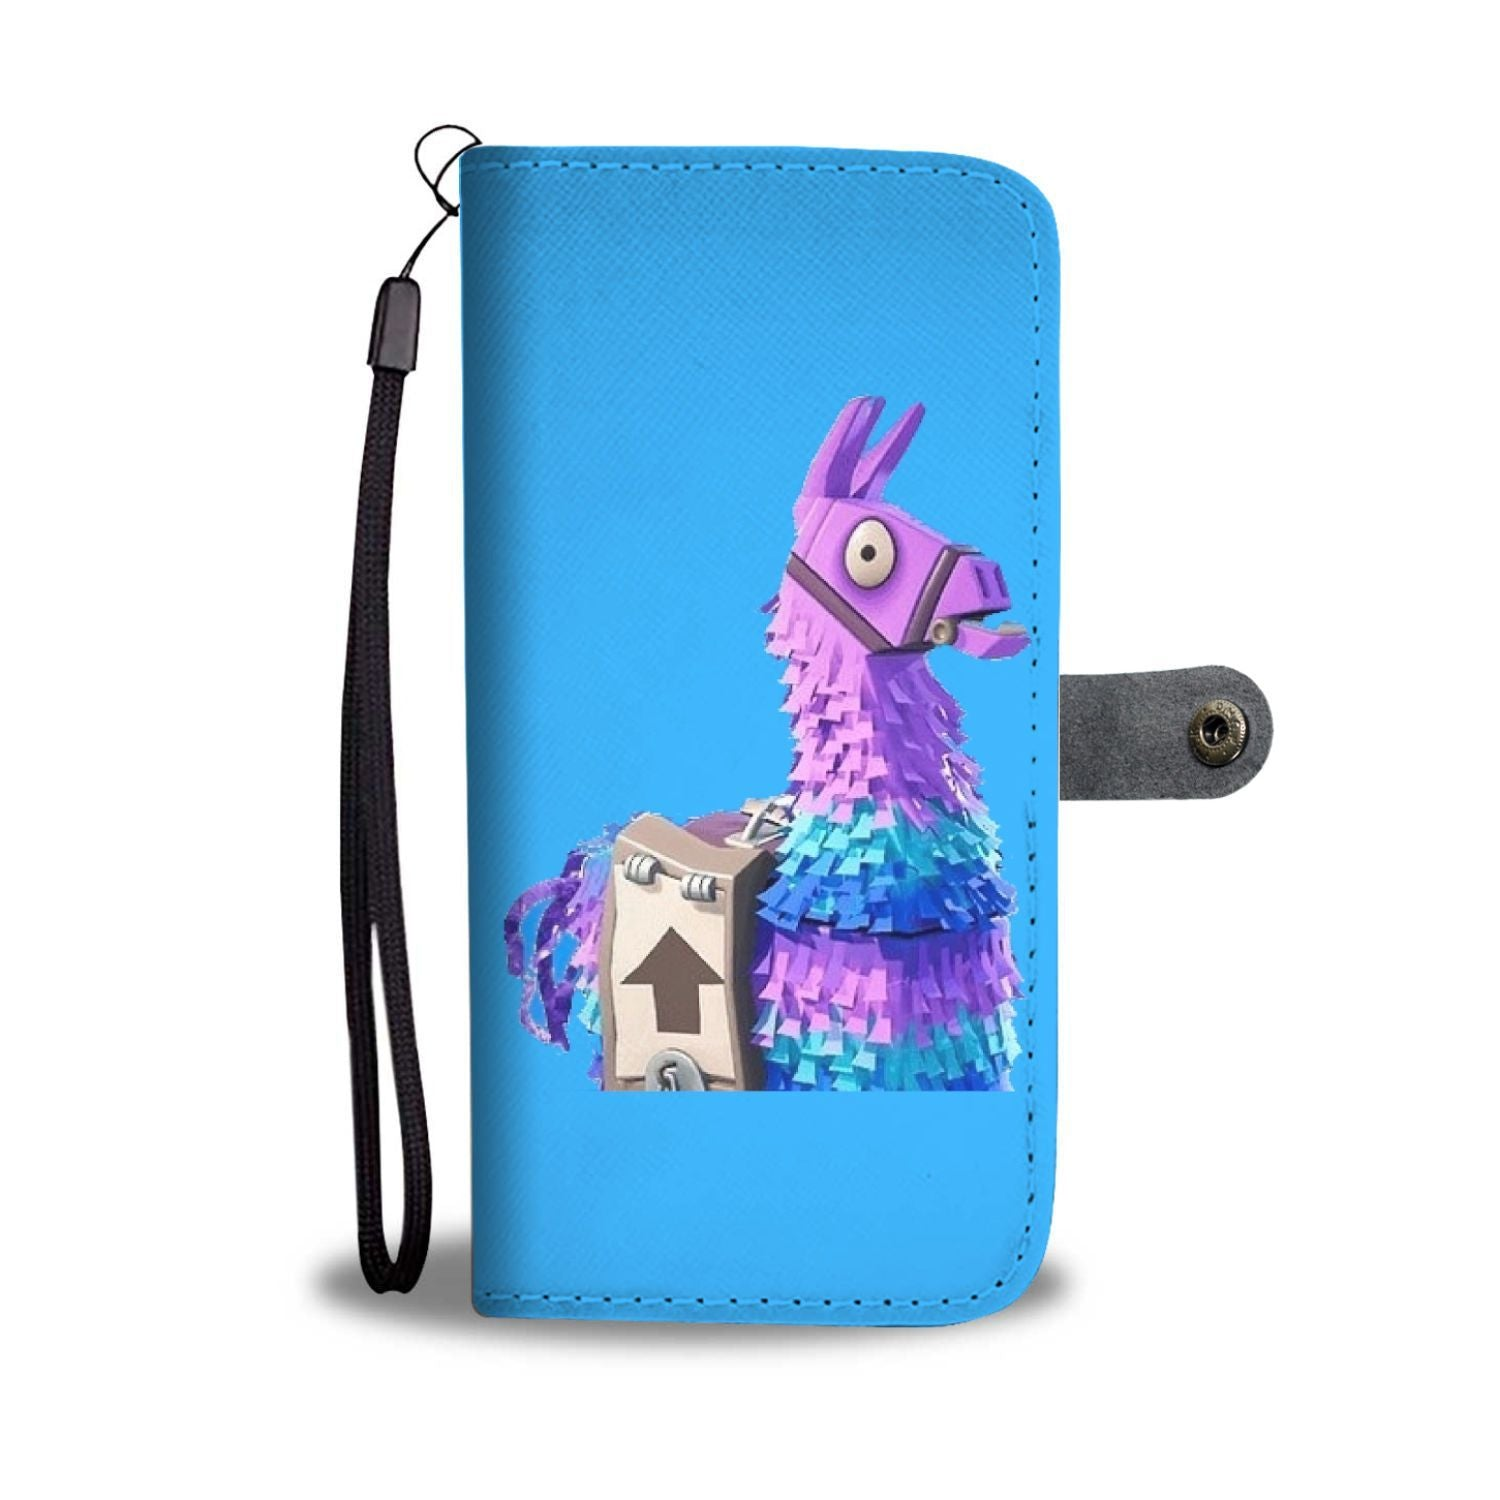 low priced 17322 63bd1 Fortnite Curious Llama Wallet iPhone Case